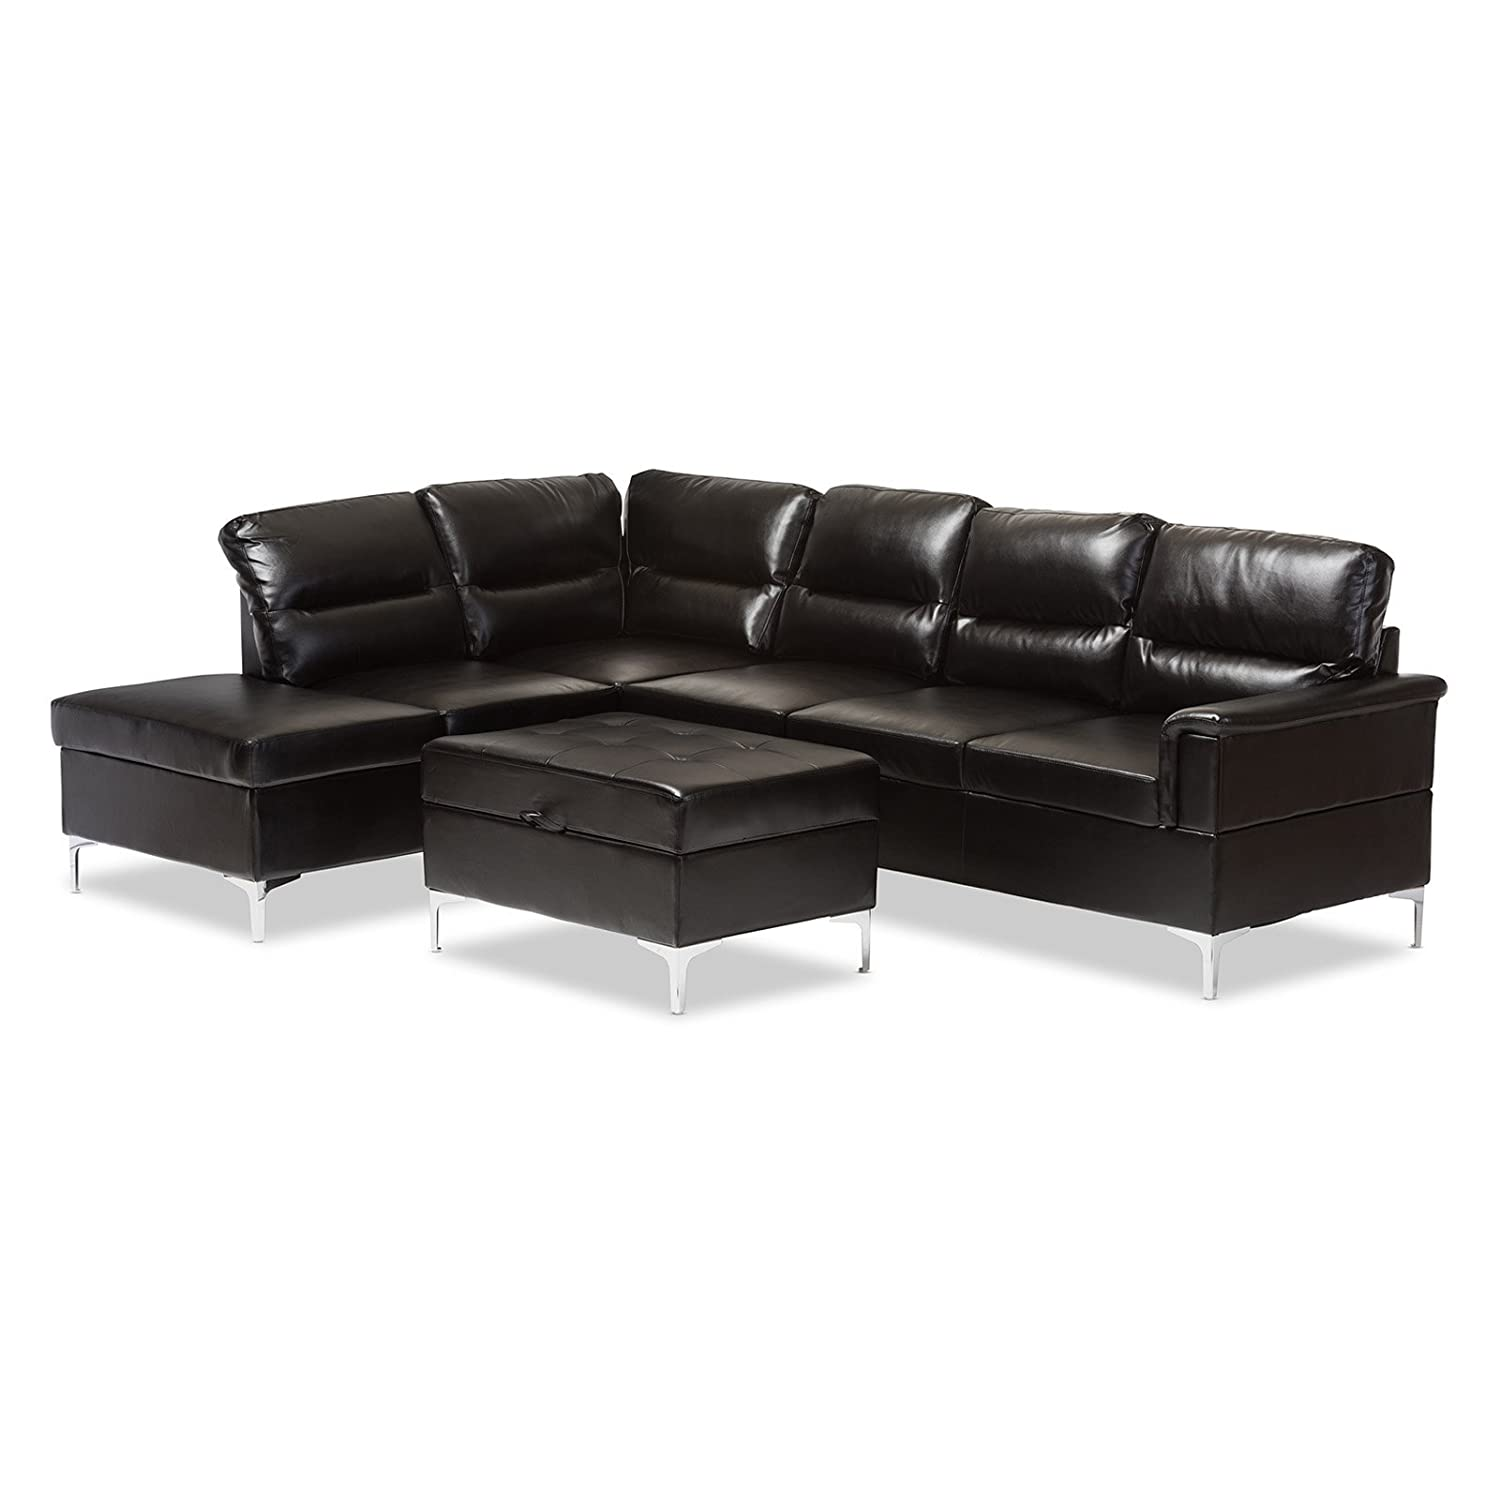 Amazon Baxton Studio Kinsley 2 Piece Sectional in Black